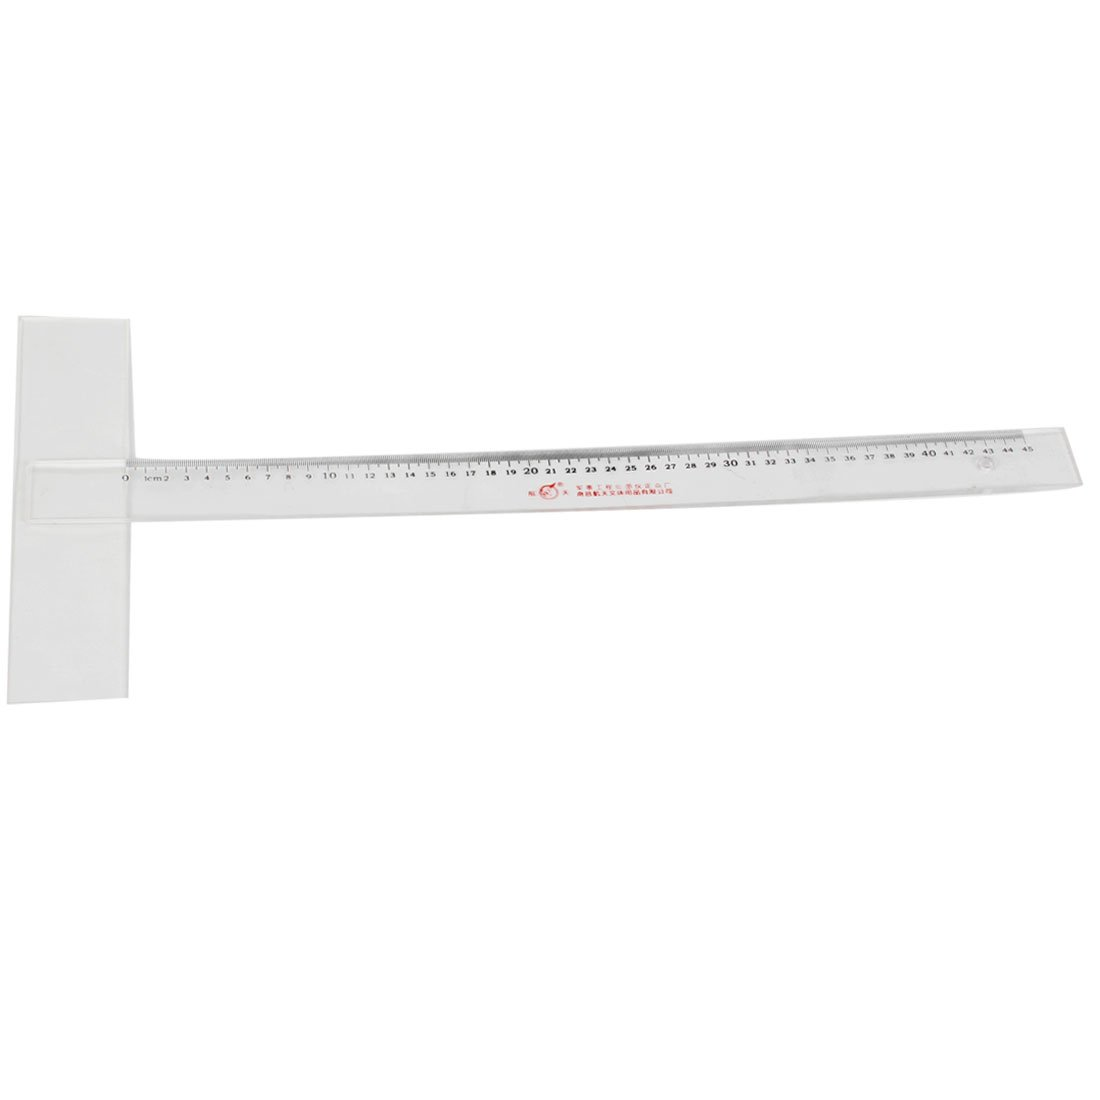 Uxcell School Office 45cm Measurement Tool Ruler Rule, Black Clear